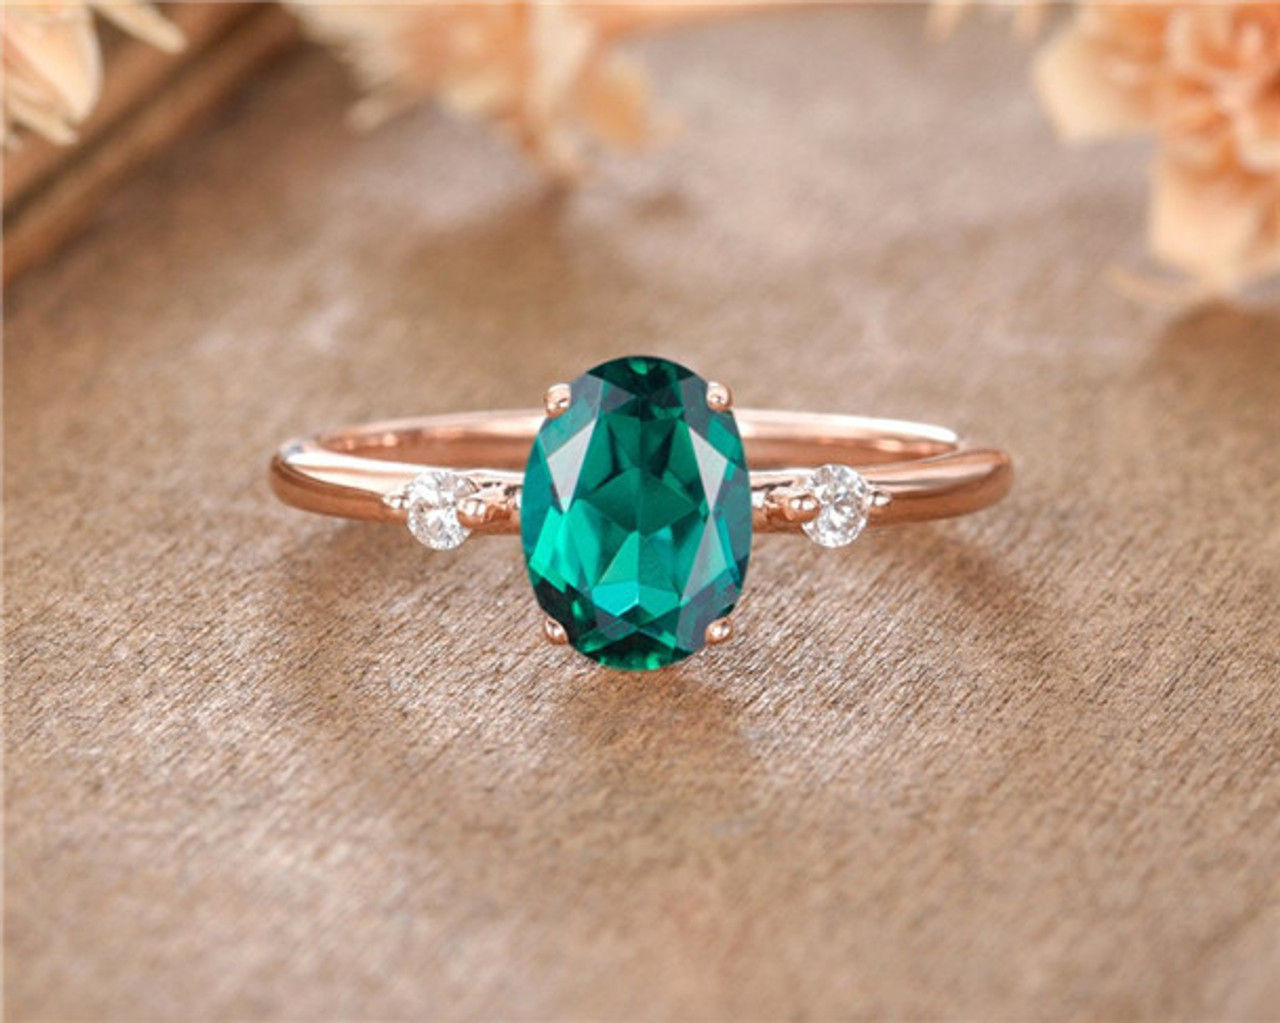 dfb1e866f6864 Lab Emerald Engagement Ring Rose Gold Oval Cut Birthstone Promise Women  Anniversary Gift